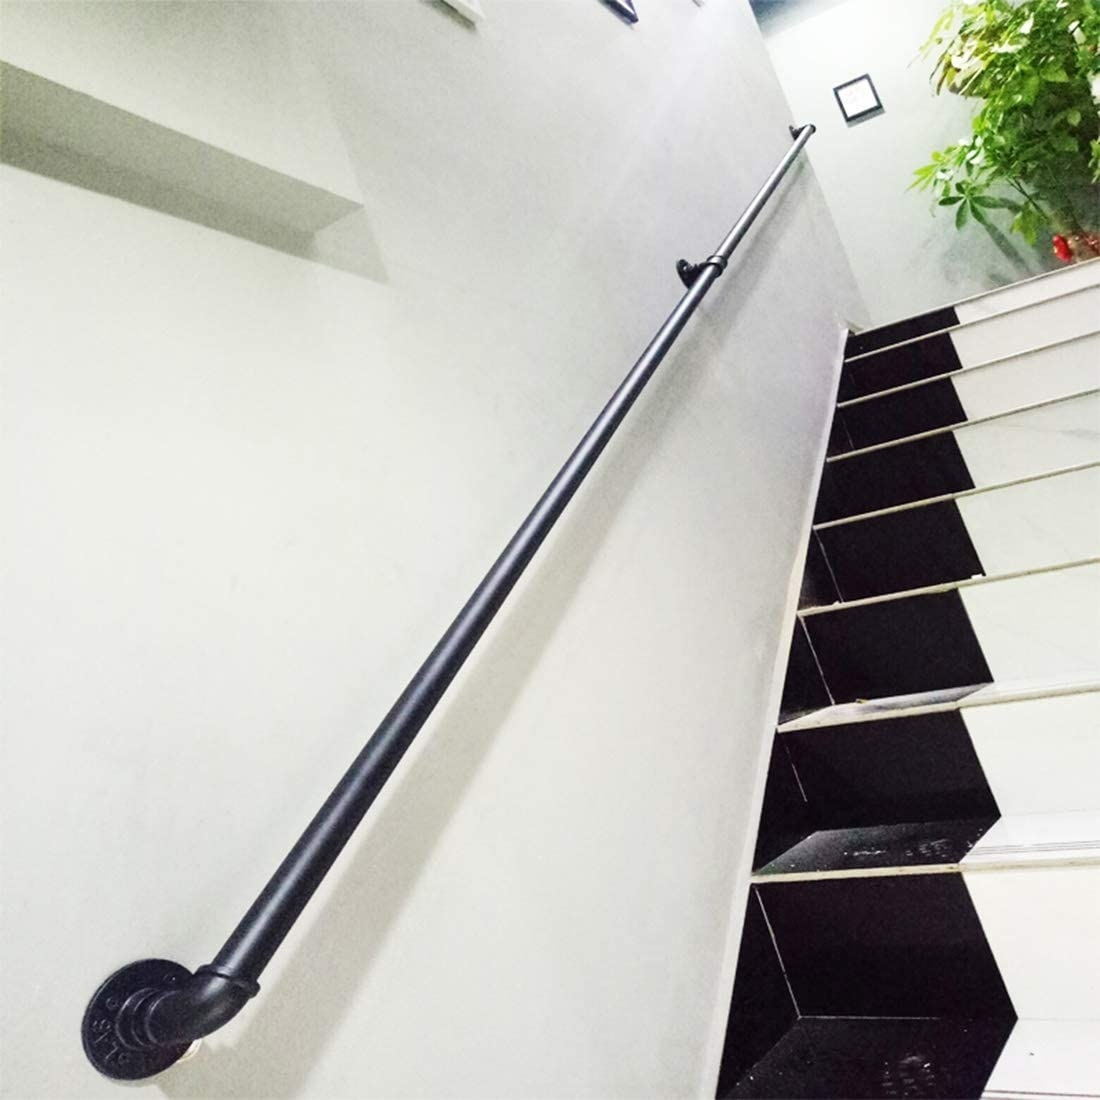 Elderly Safety Staircase Railing Wrought Iron Balustrade Water | Industrial Stair Railing Design | Industrial Style | All Metal Interior | Contemporary Metal | Small Stair | Detail Industrial